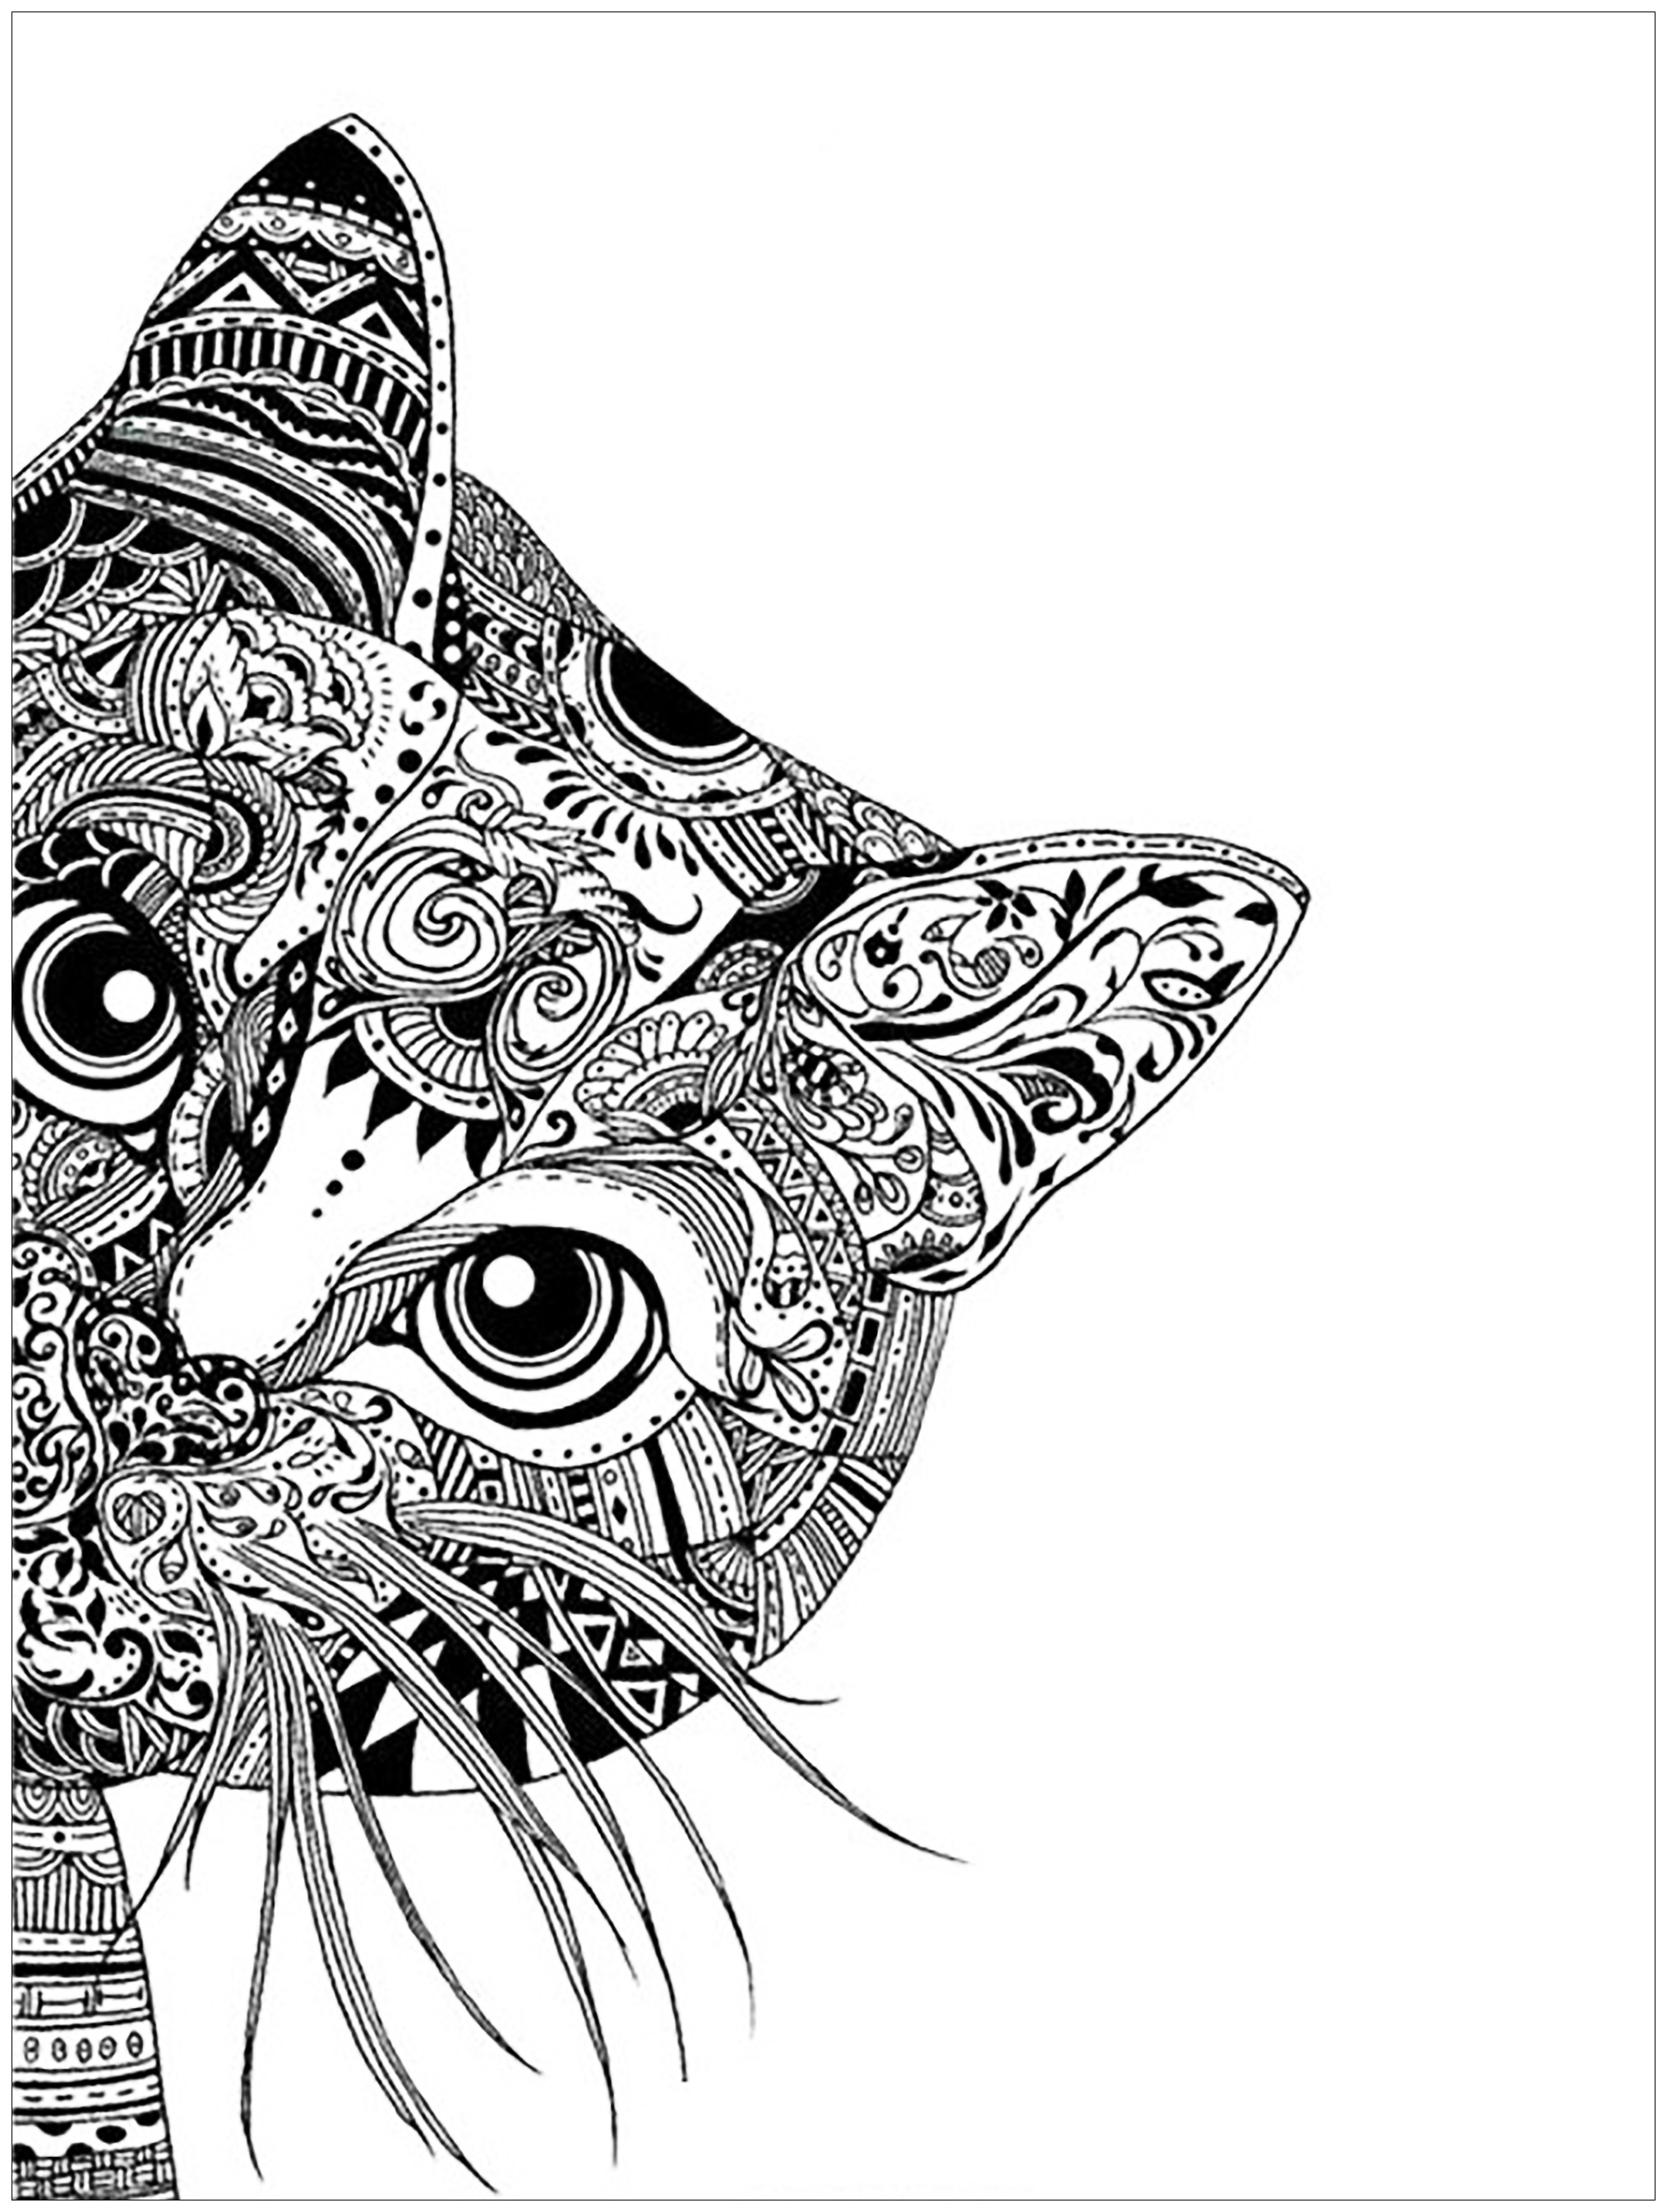 Wolf mandala coloring pages - Coloring Pages Adults Cat Head Free To Print